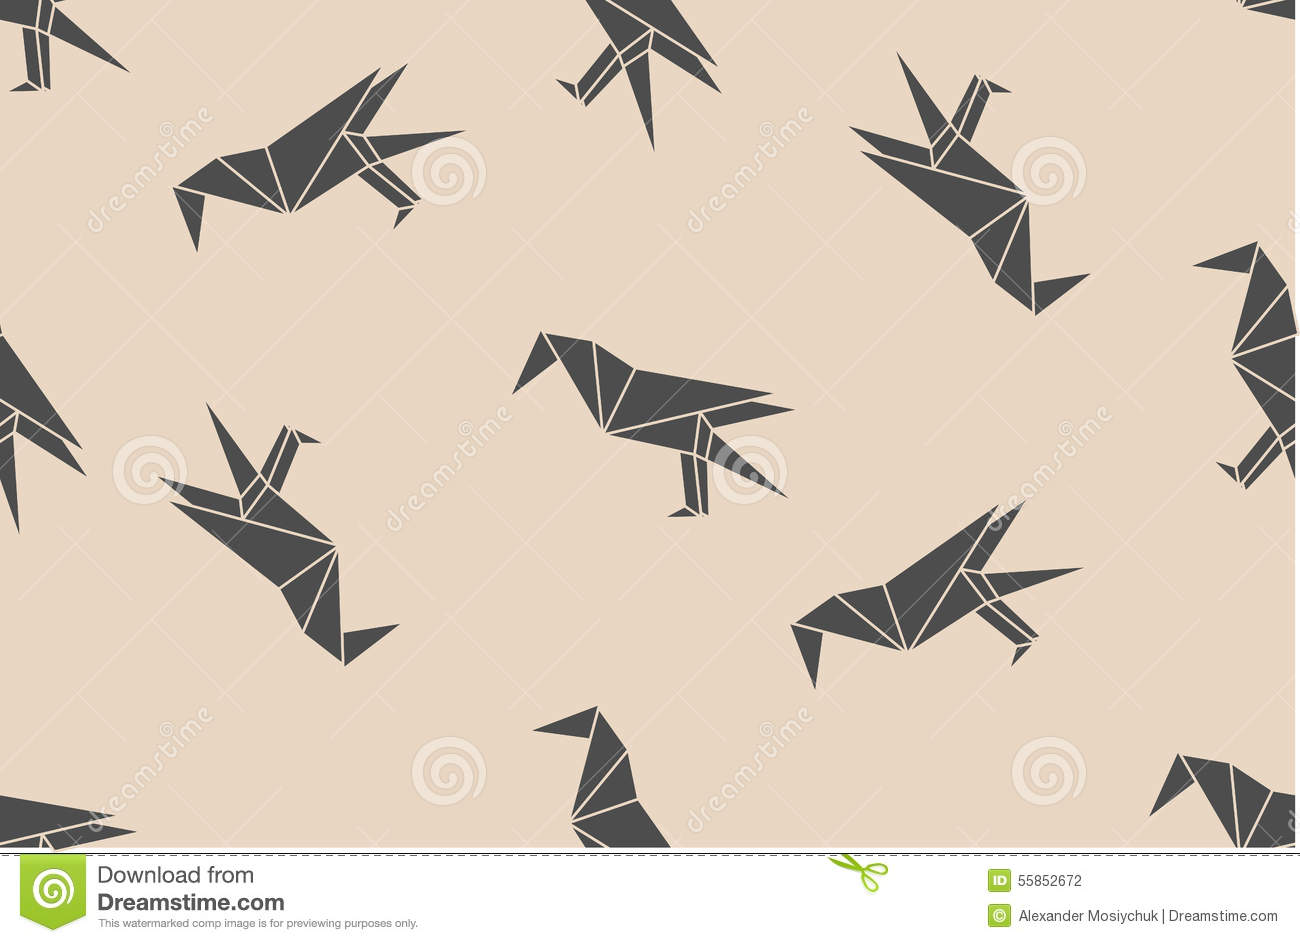 Vector Seamless Pattern With Japanese Origami Black Linear Raven Birds Silhouettes Stock Illustration Illustration Of Linear Design 55852672